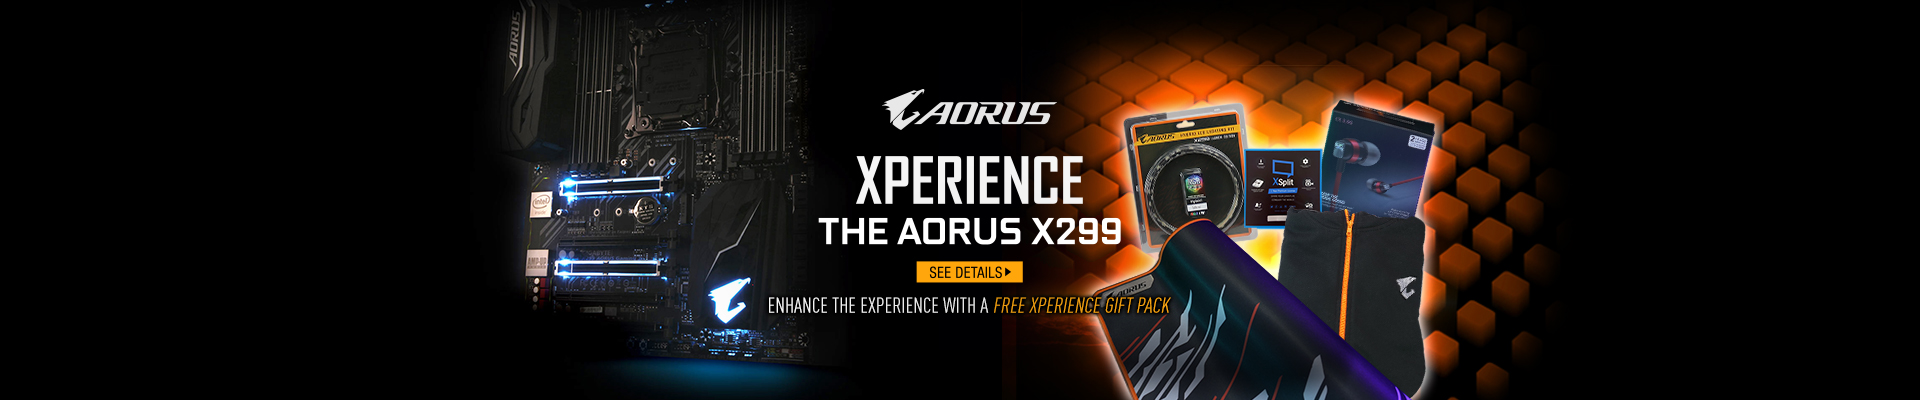 Gigabyte X299 Free Xperience Gift Pack